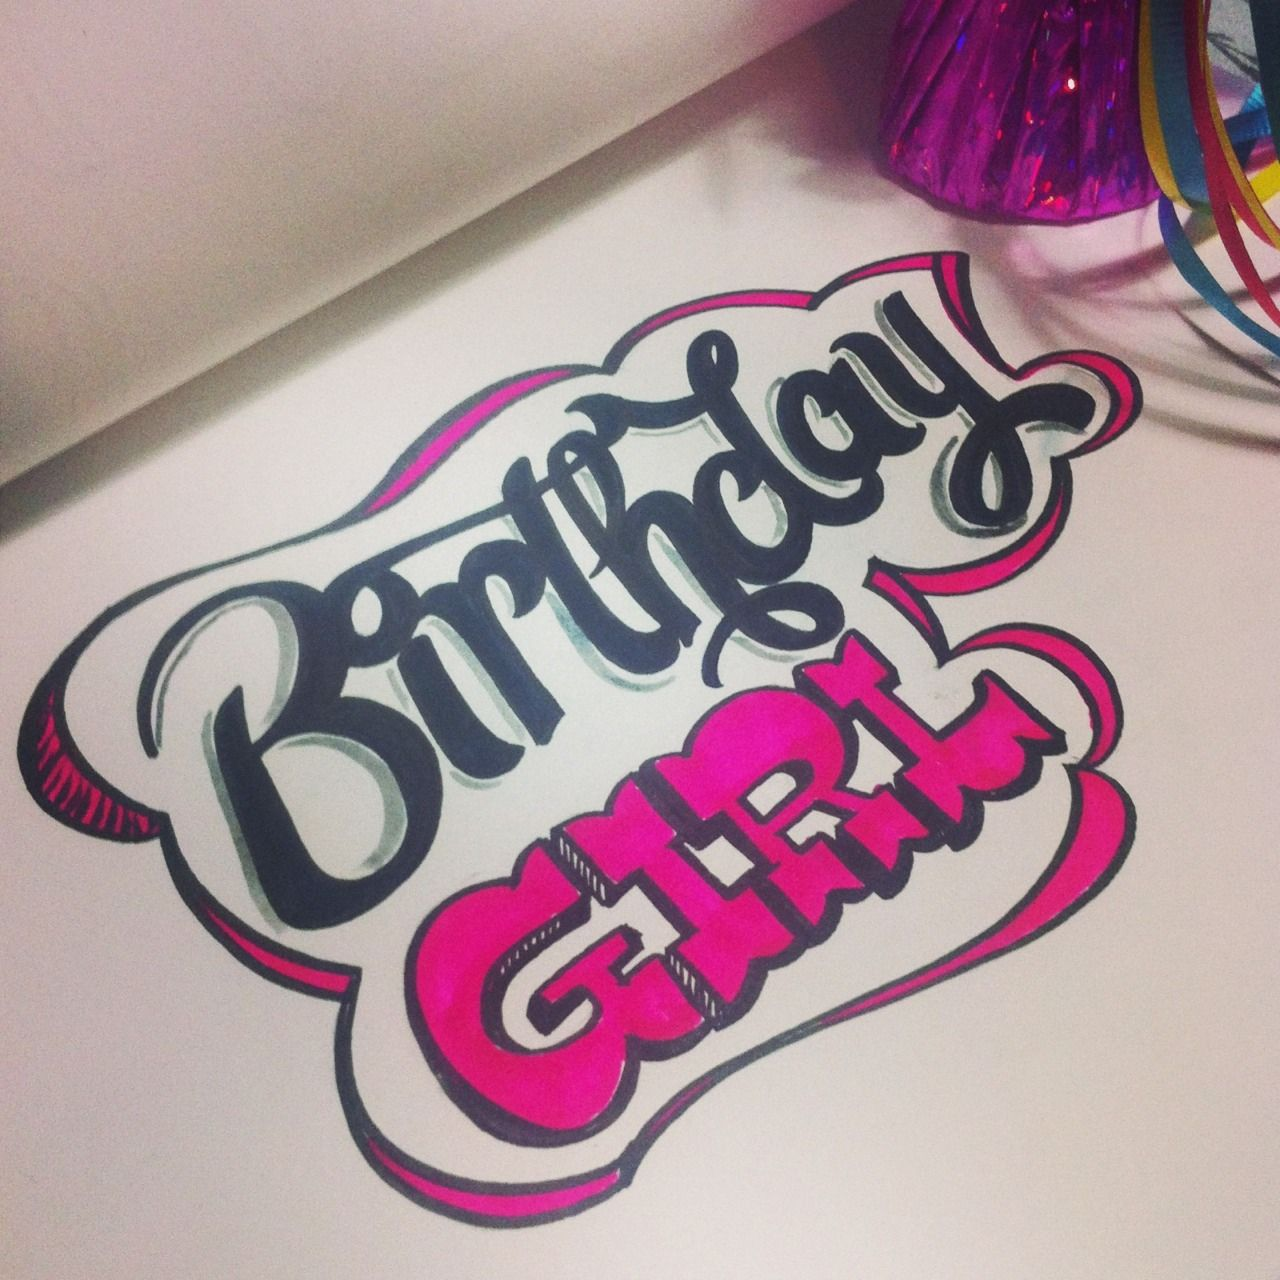 Birthday girl thats me lettering letteringdaily type doodle birthday girl thats me lettering letteringdaily type doodle handdrawn voltagebd Choice Image